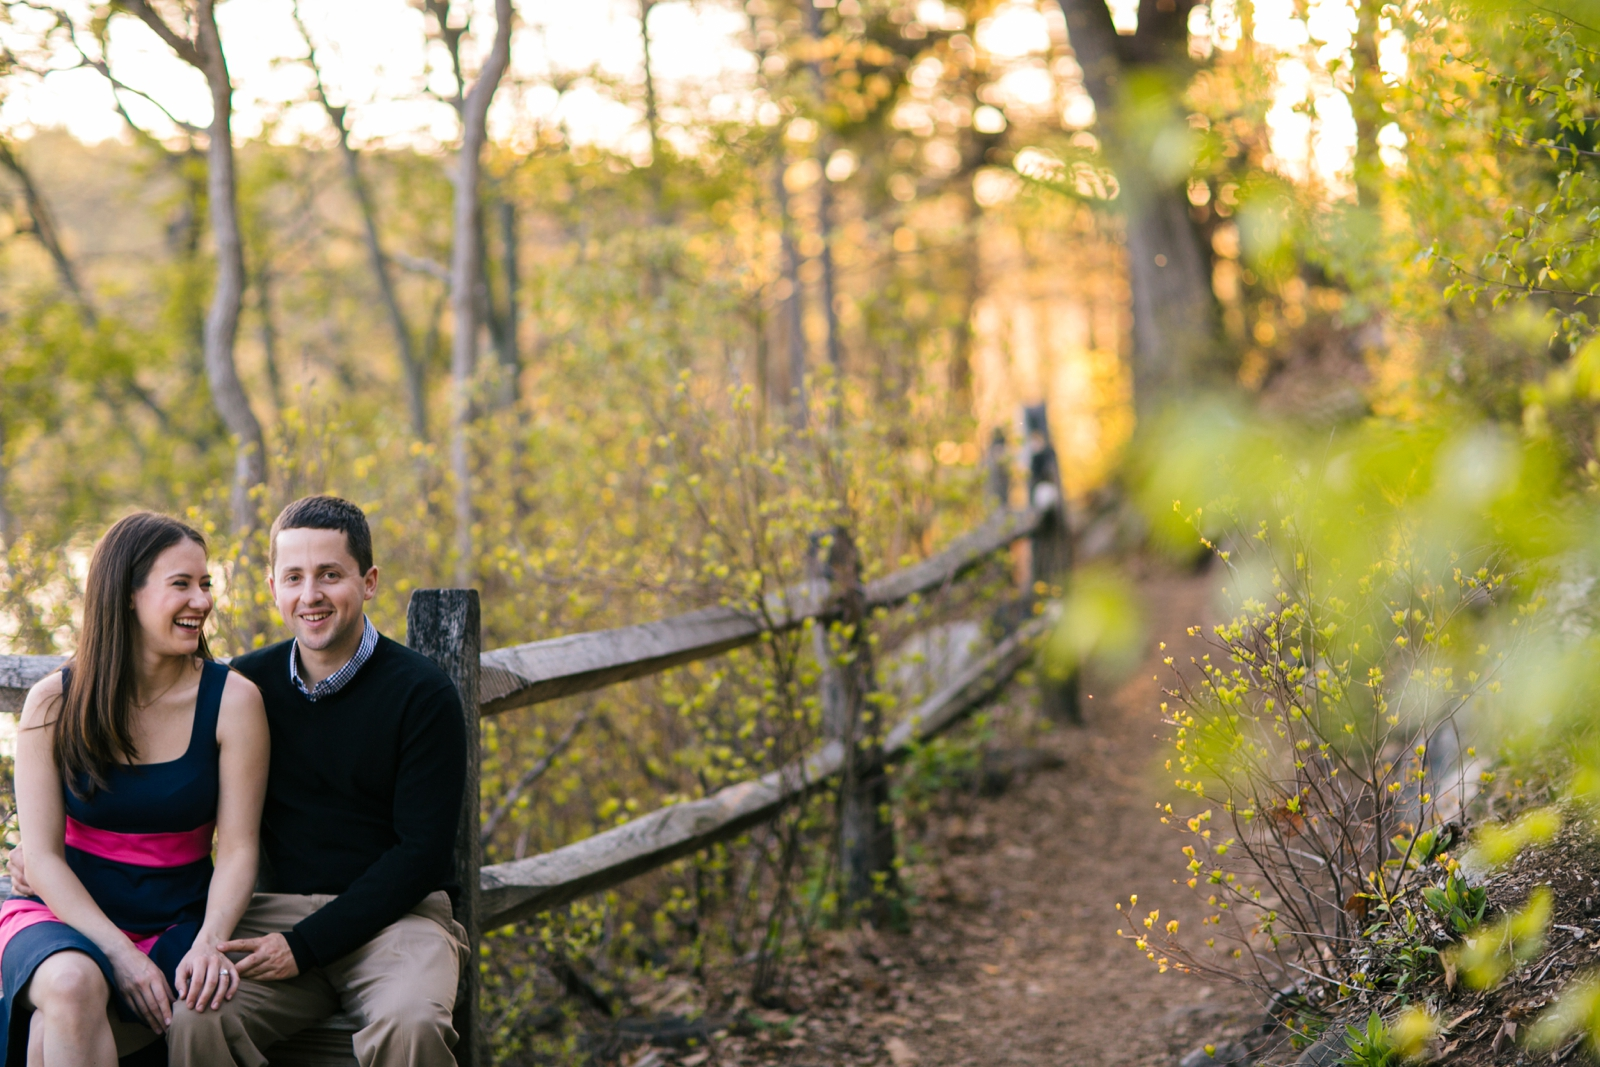 Candid intimate engagement portrait on nature trail with beautiful soft golden hour light